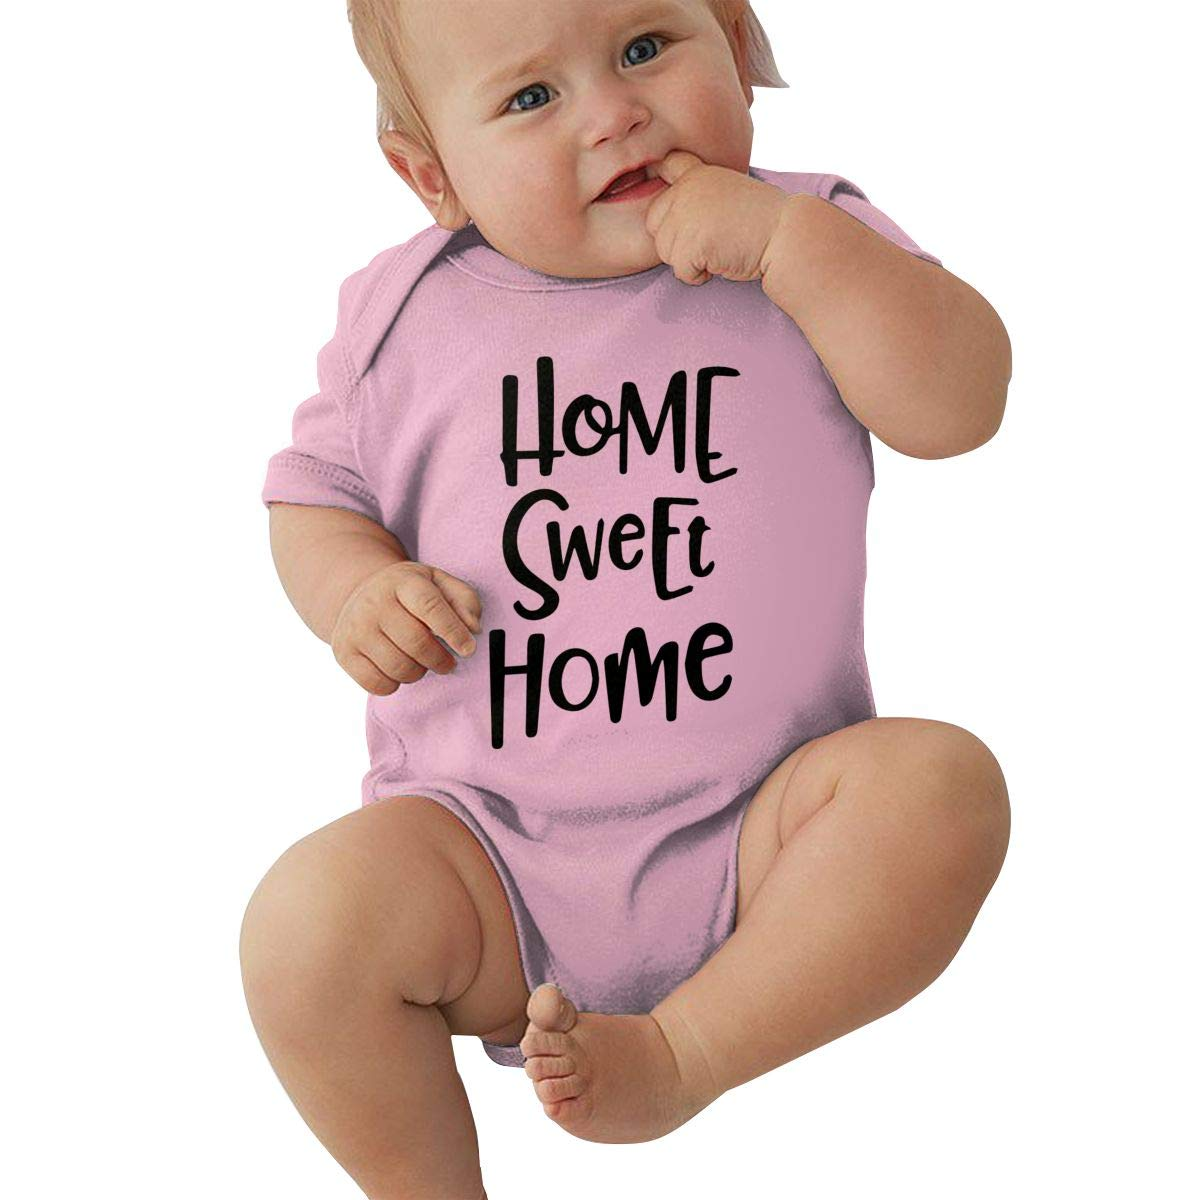 Home Sweet Home Infant Baby Girl Boy Romper Jumpsuit Short Sleeve Bodysuit Tops Clothes